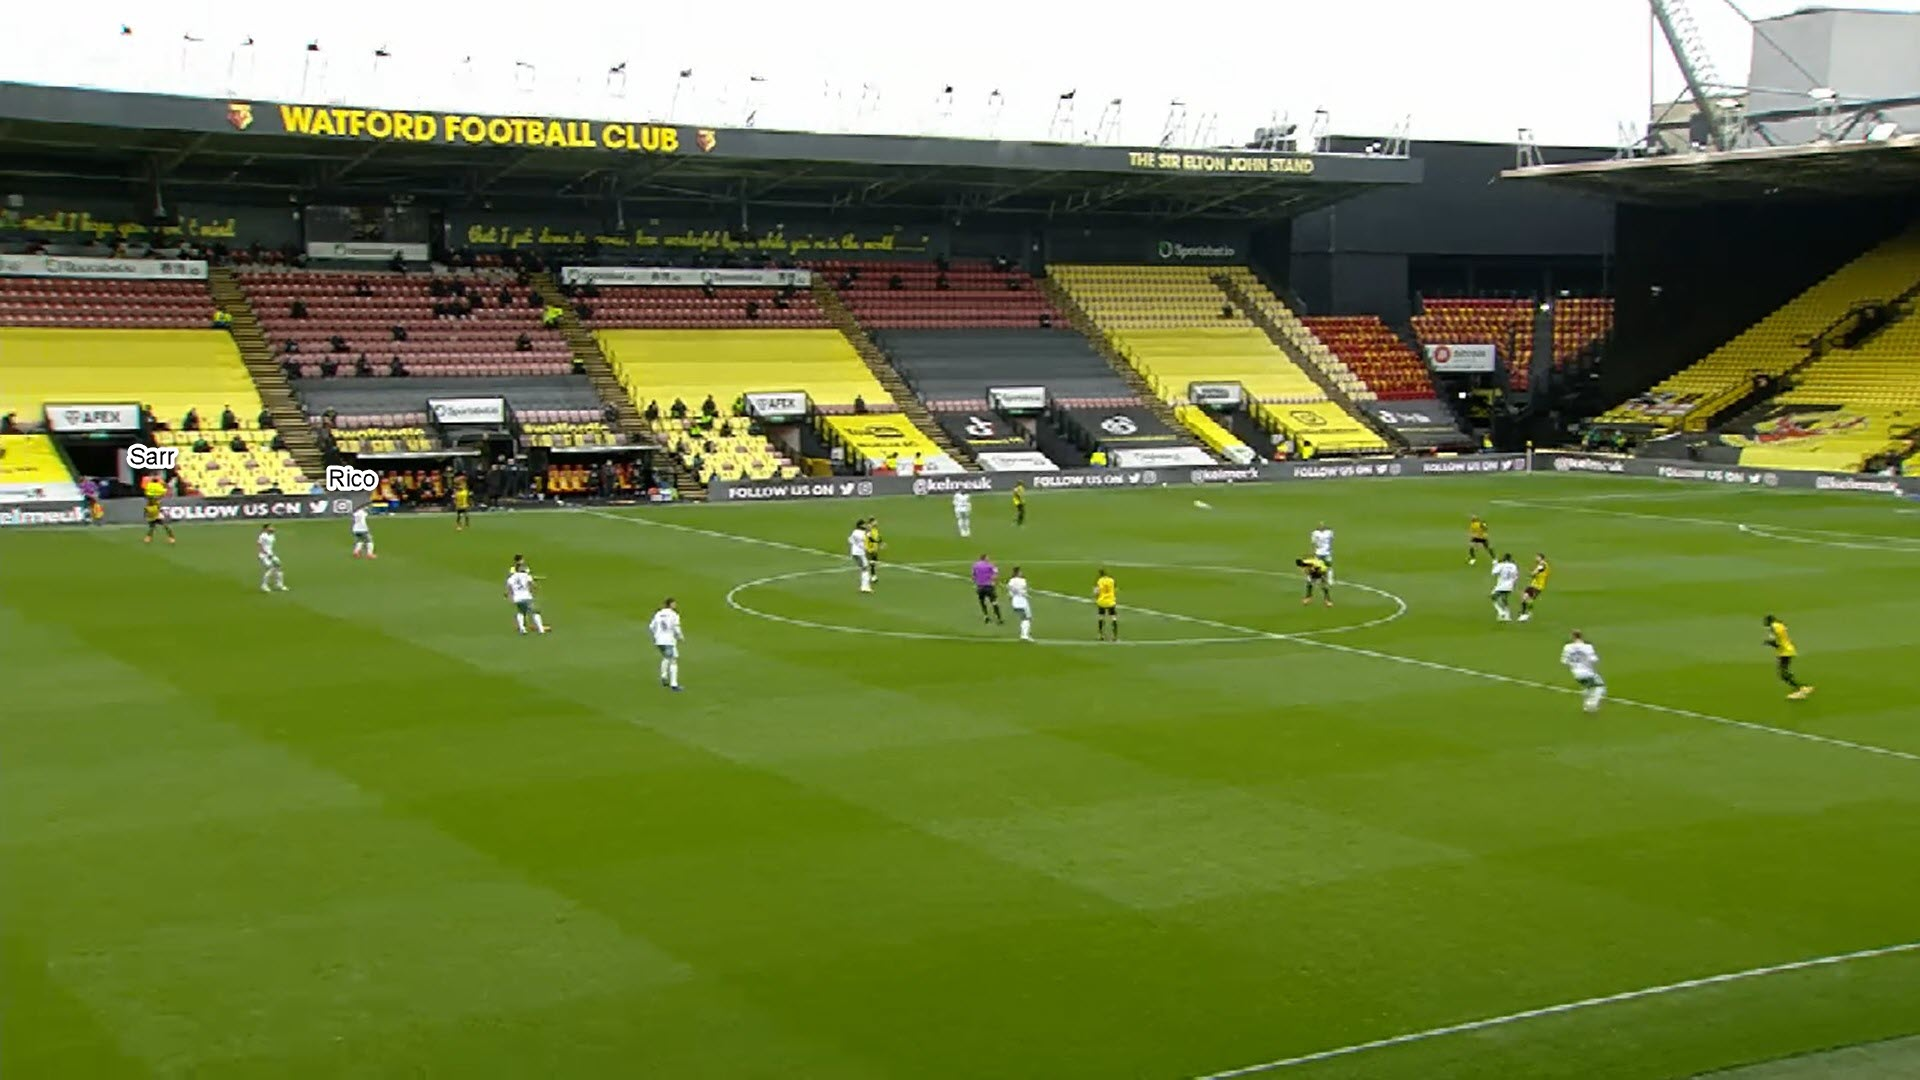 EFL Championship 2020/21: Watford vs Bournemouth - tactical analysis tactics